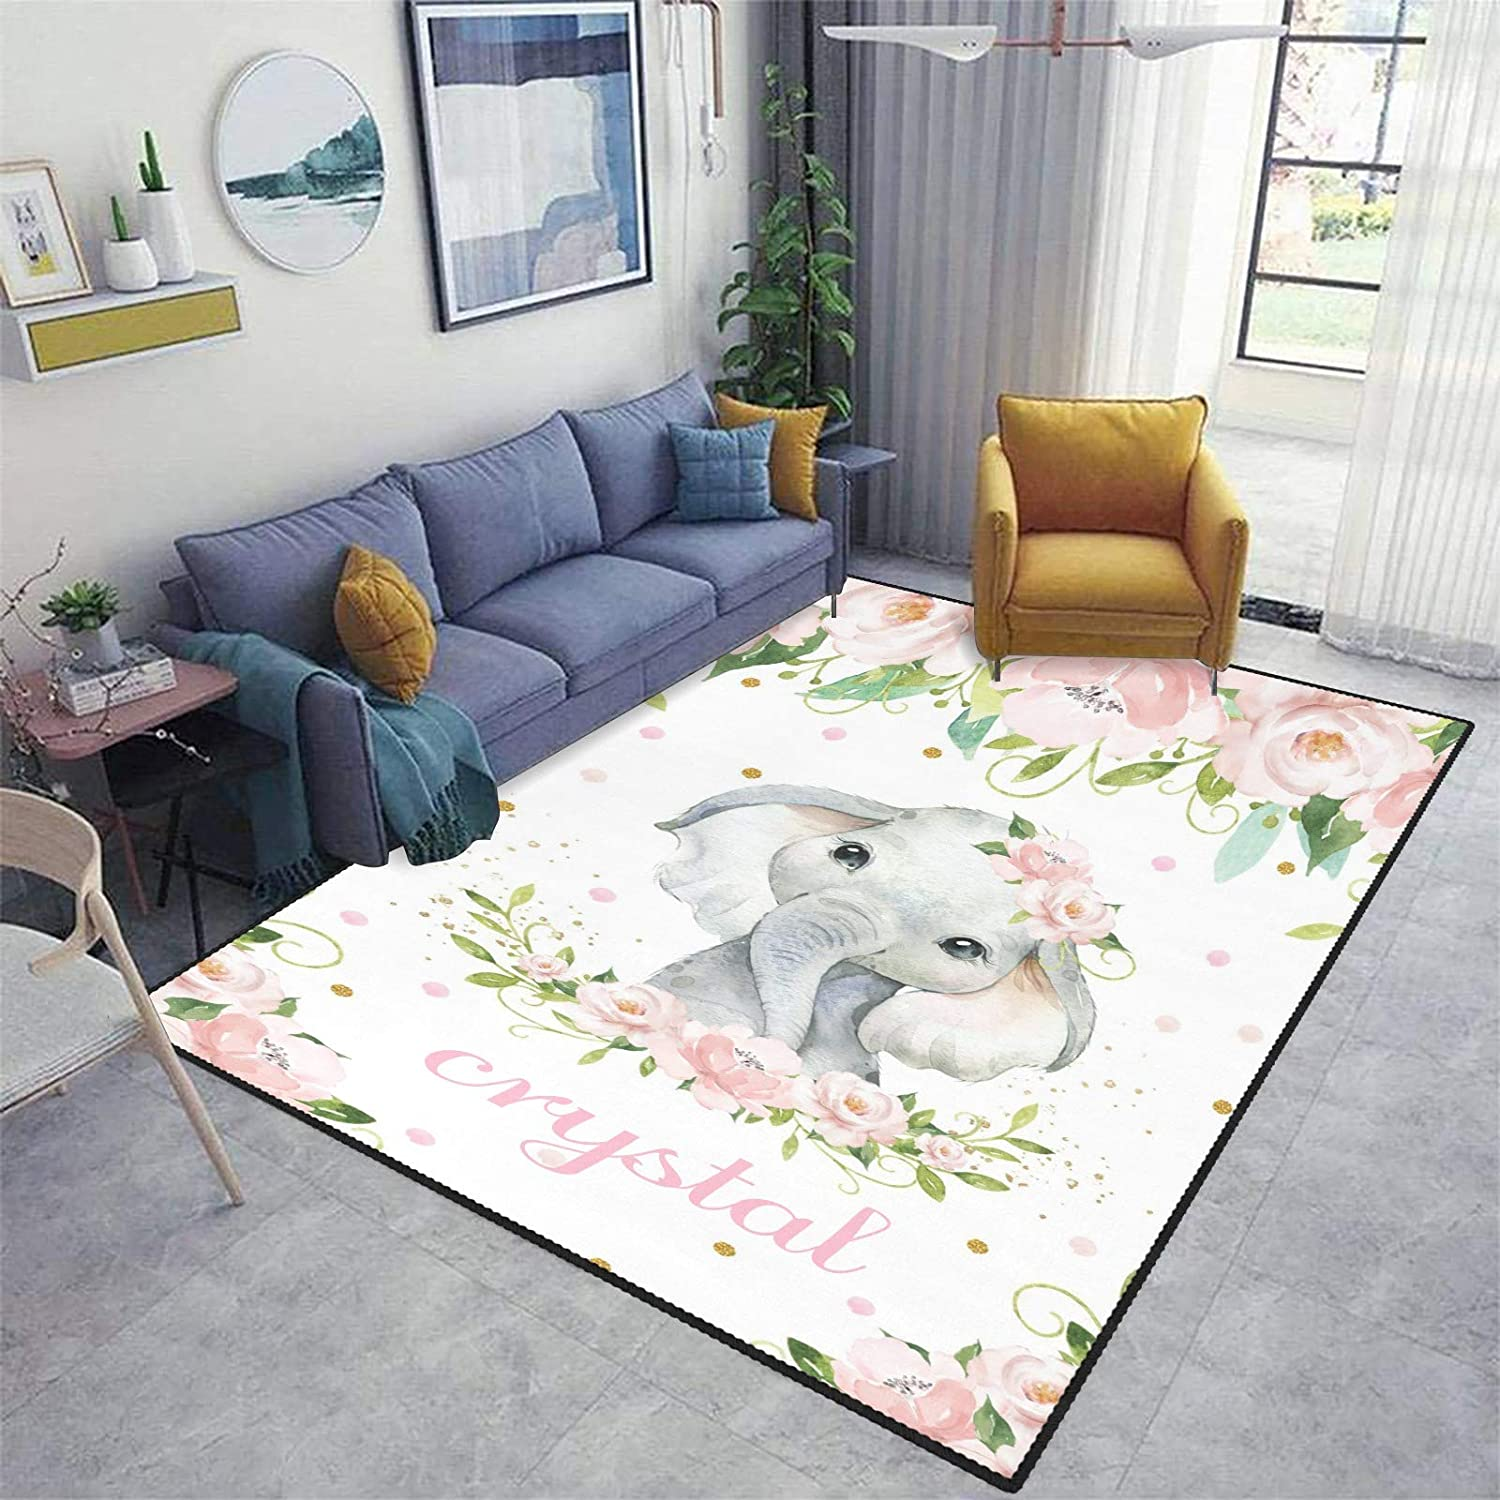 Max 77% Ranking TOP16 OFF Lonely Elephant Pink Flowers Area Carpet Personalized Custom Rug